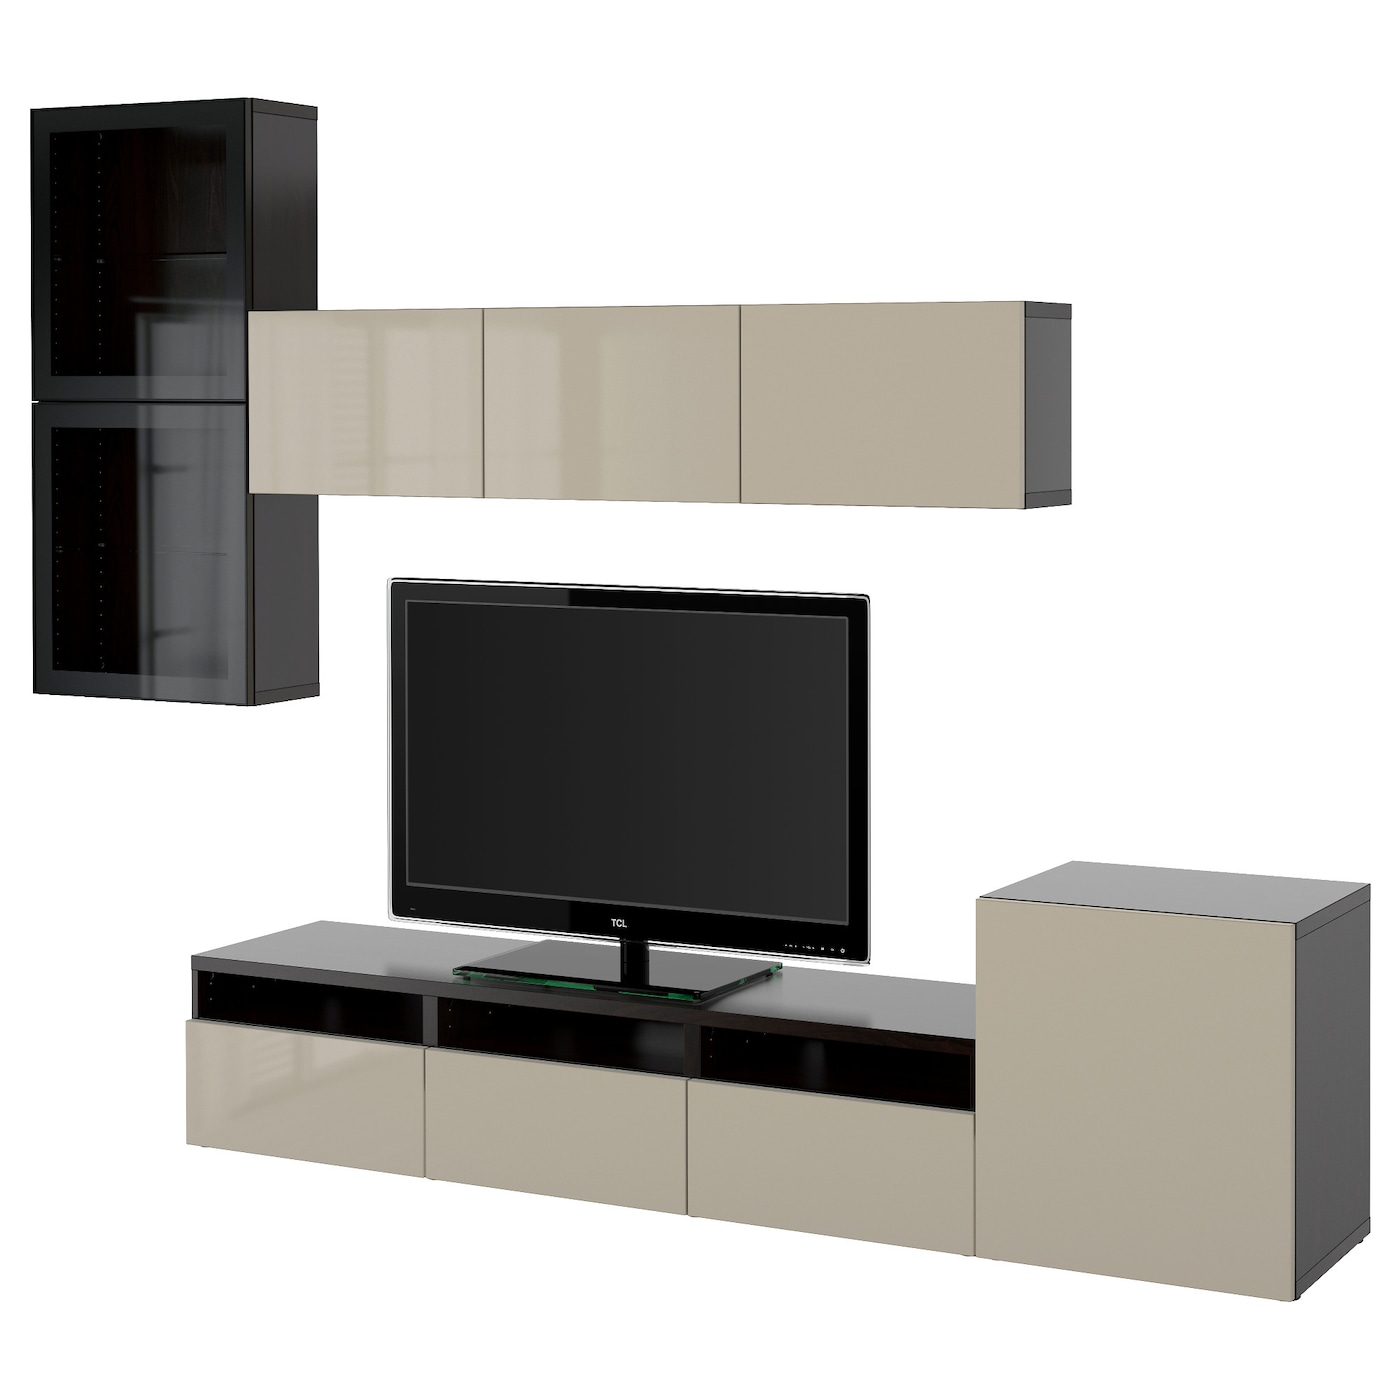 tv stands tv units ikea. Black Bedroom Furniture Sets. Home Design Ideas